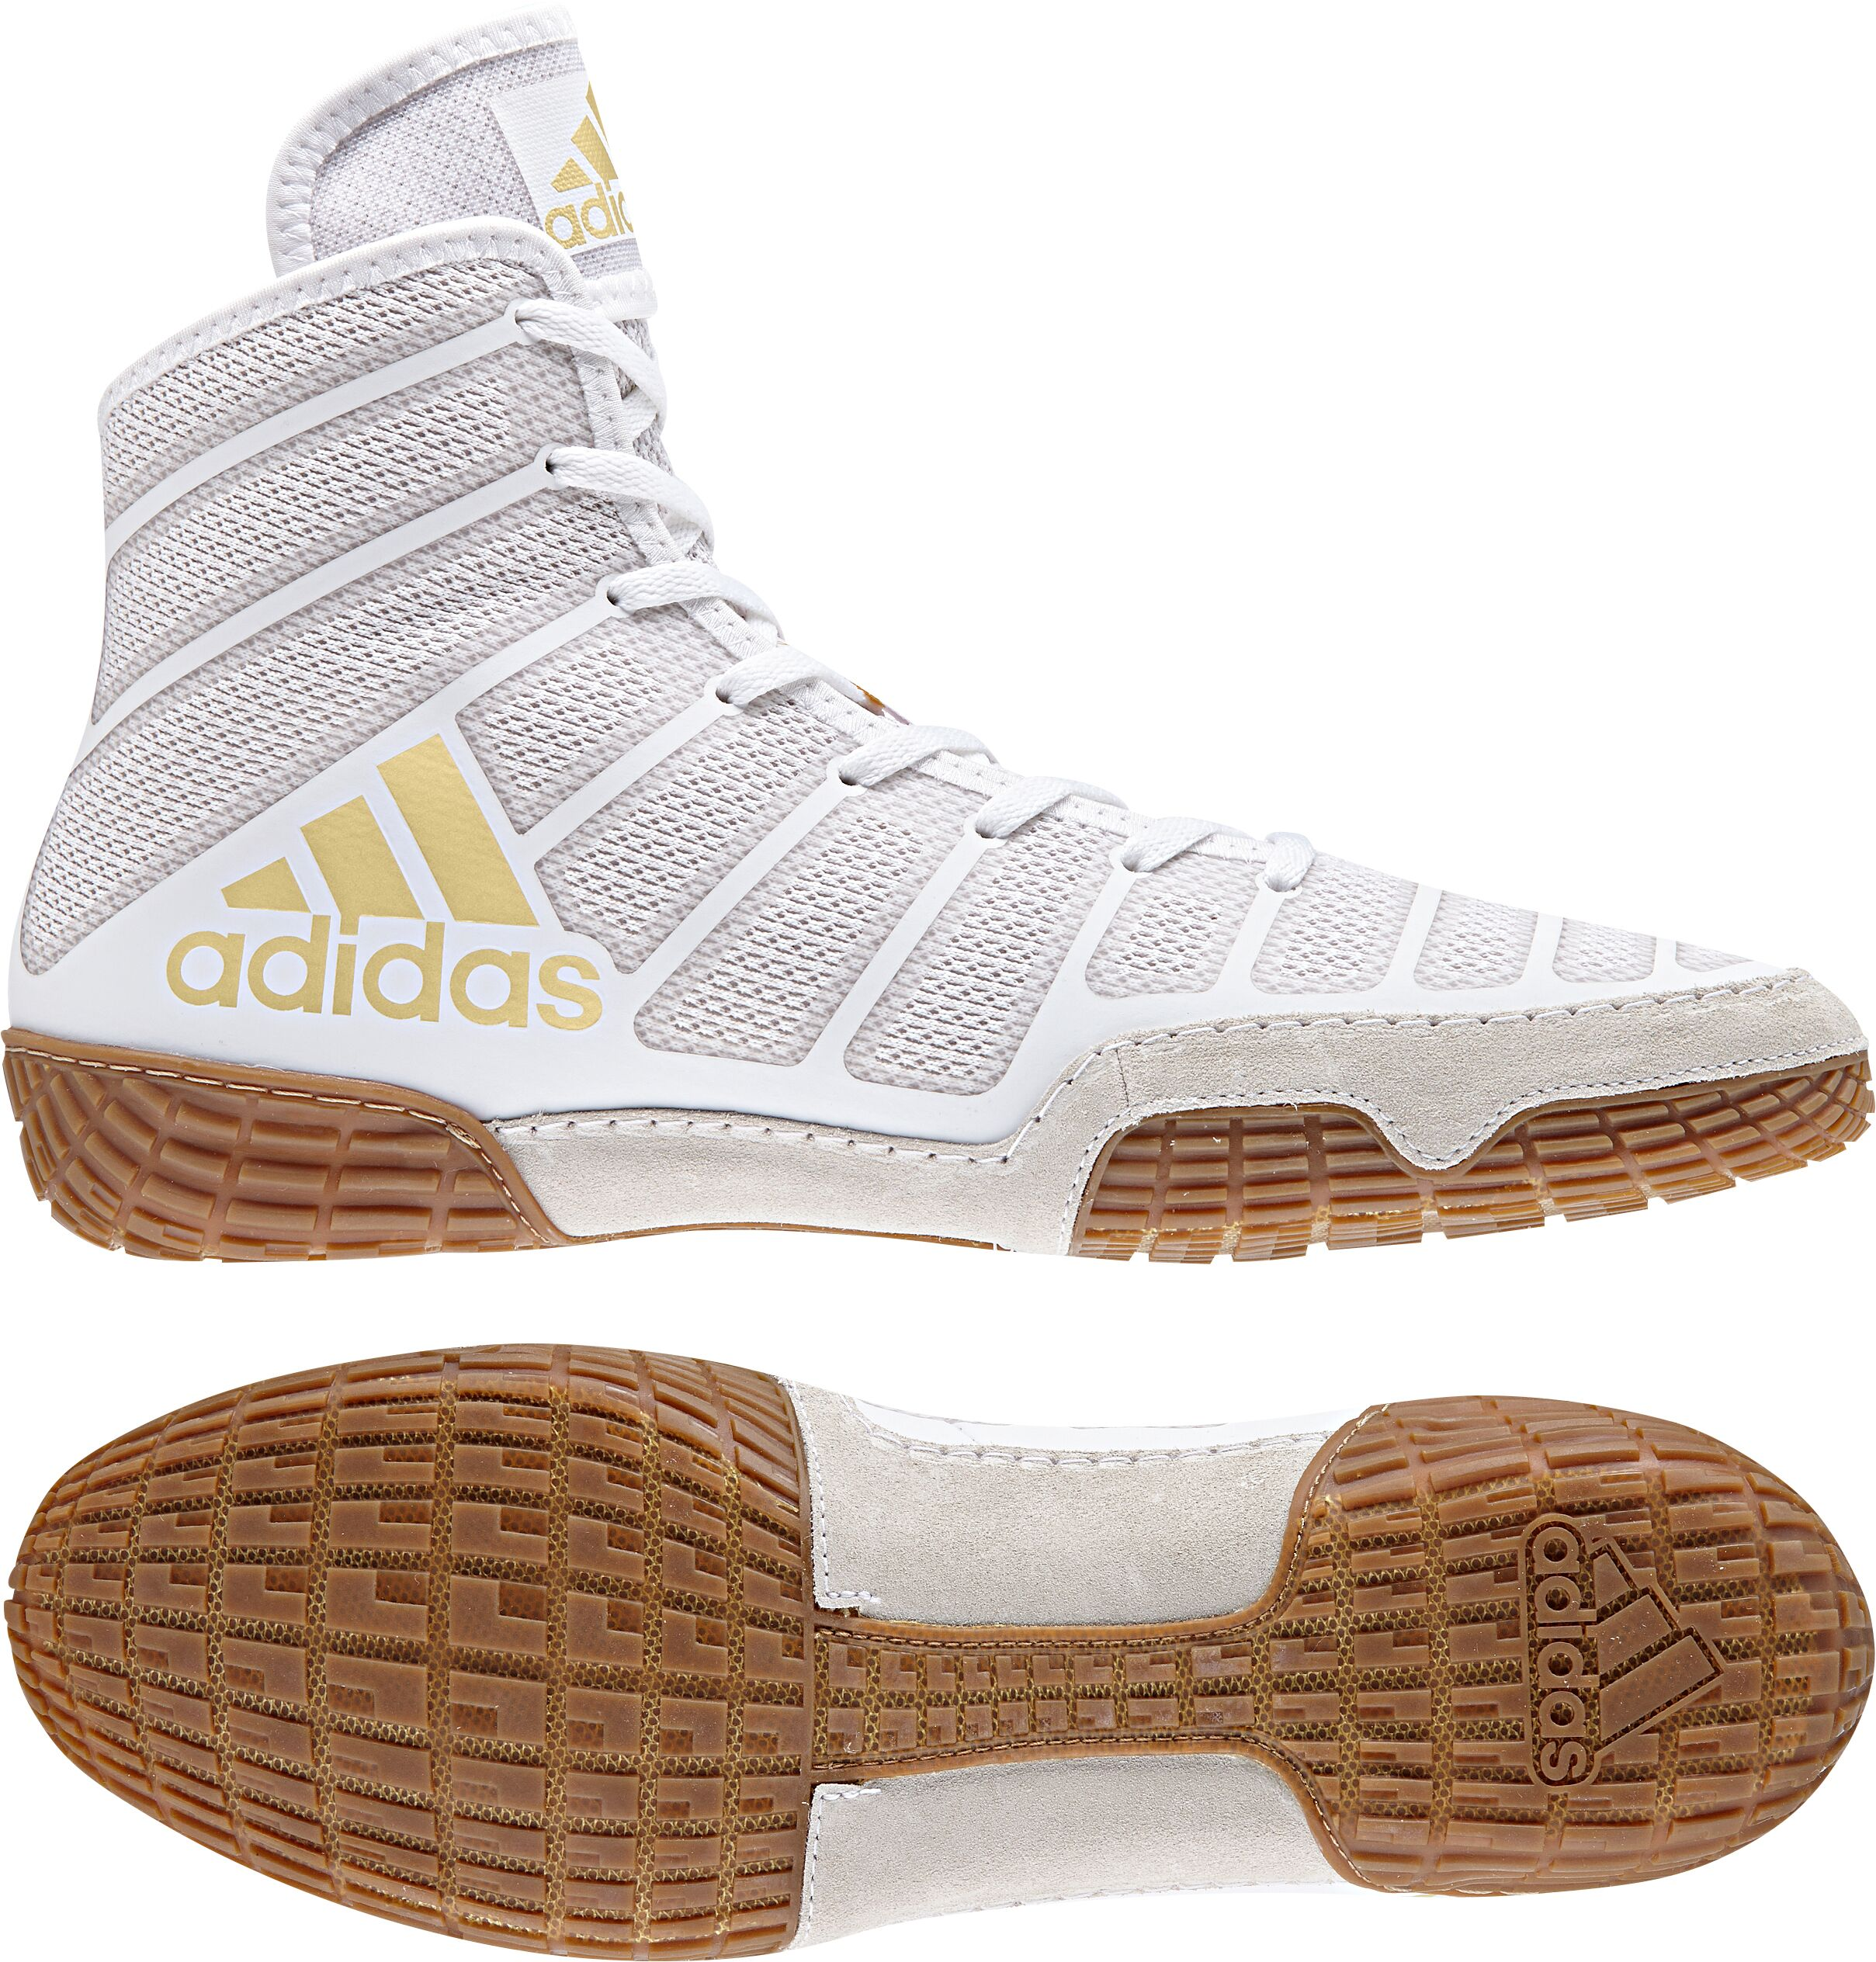 adiZero™ Varner II Wrestling Shoes, color: White/Vegas Gold/Gum